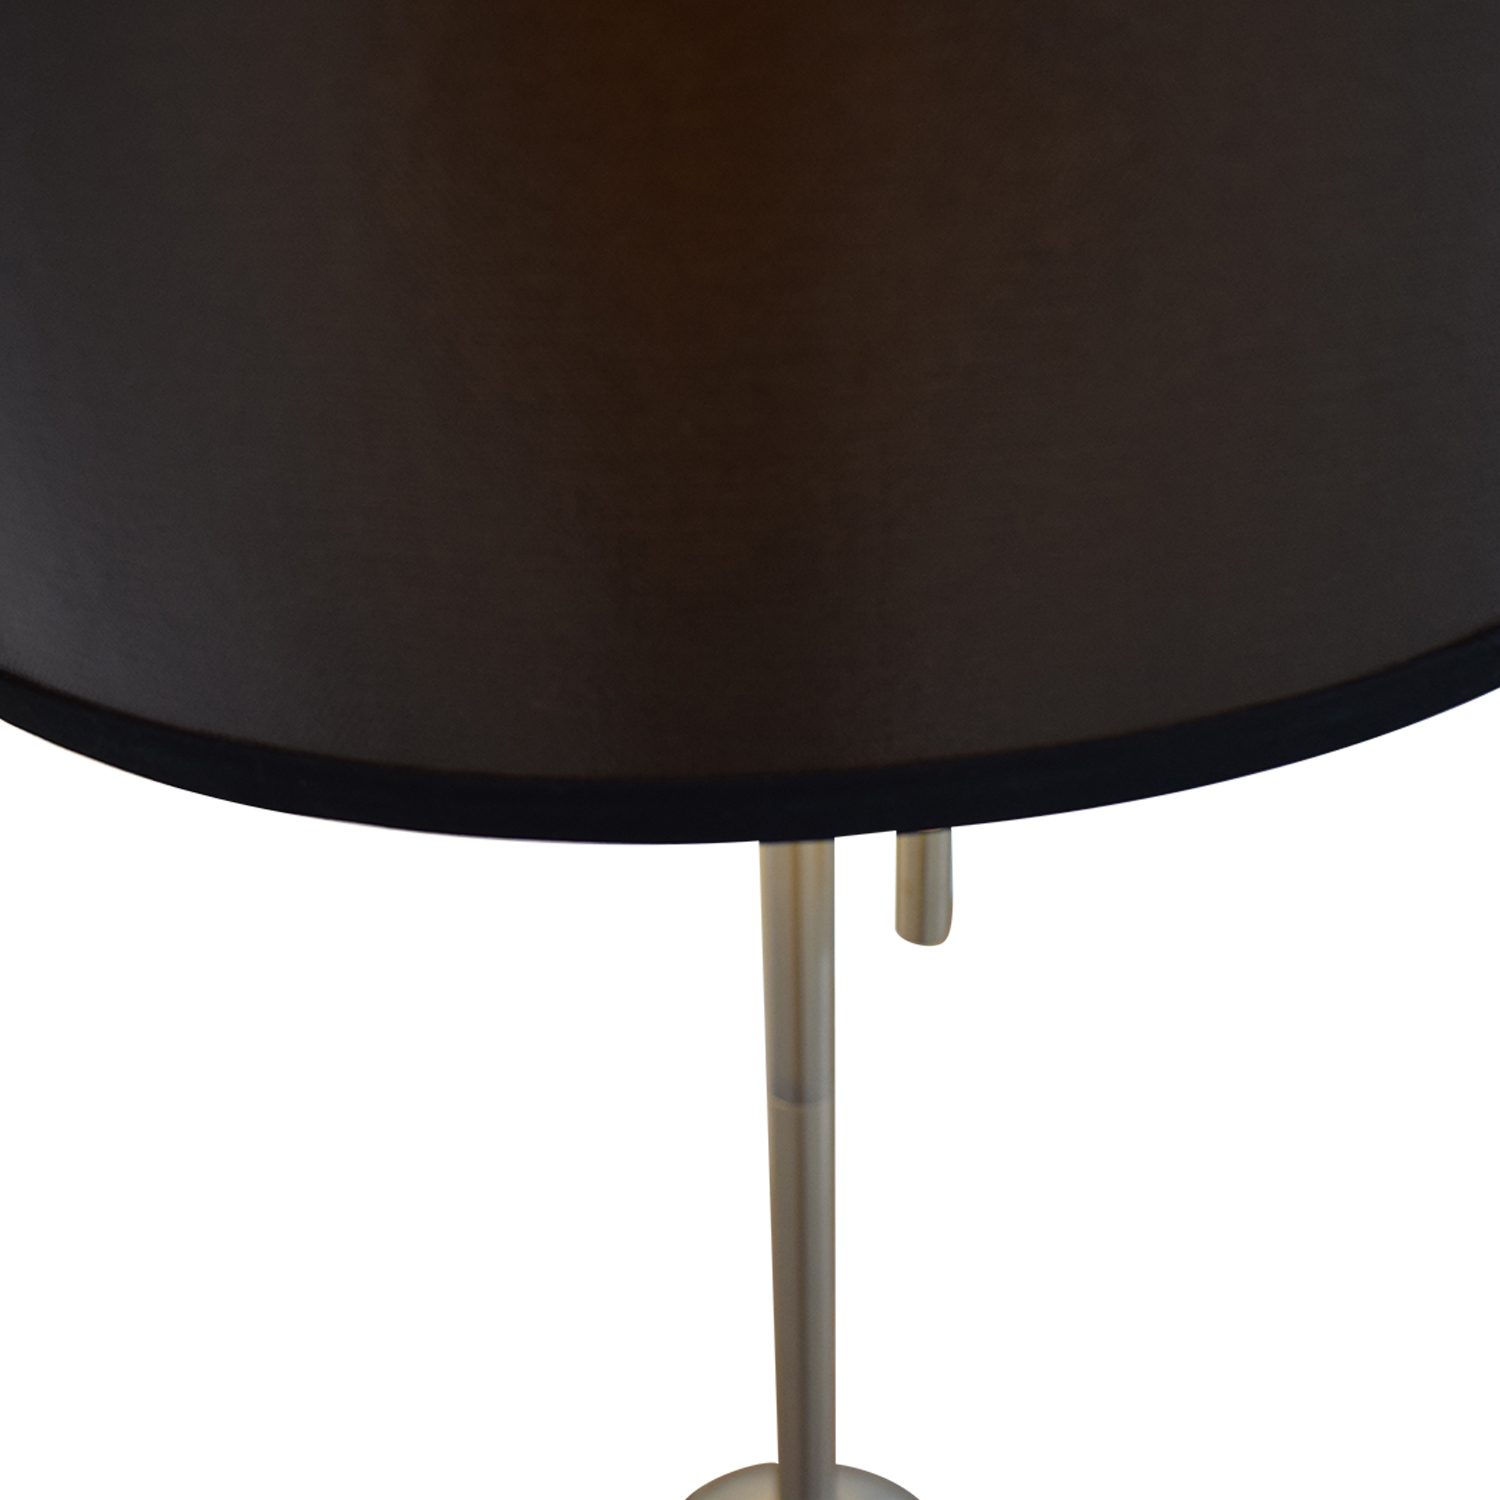 buy Silver Base Table Lamp with Black Shade